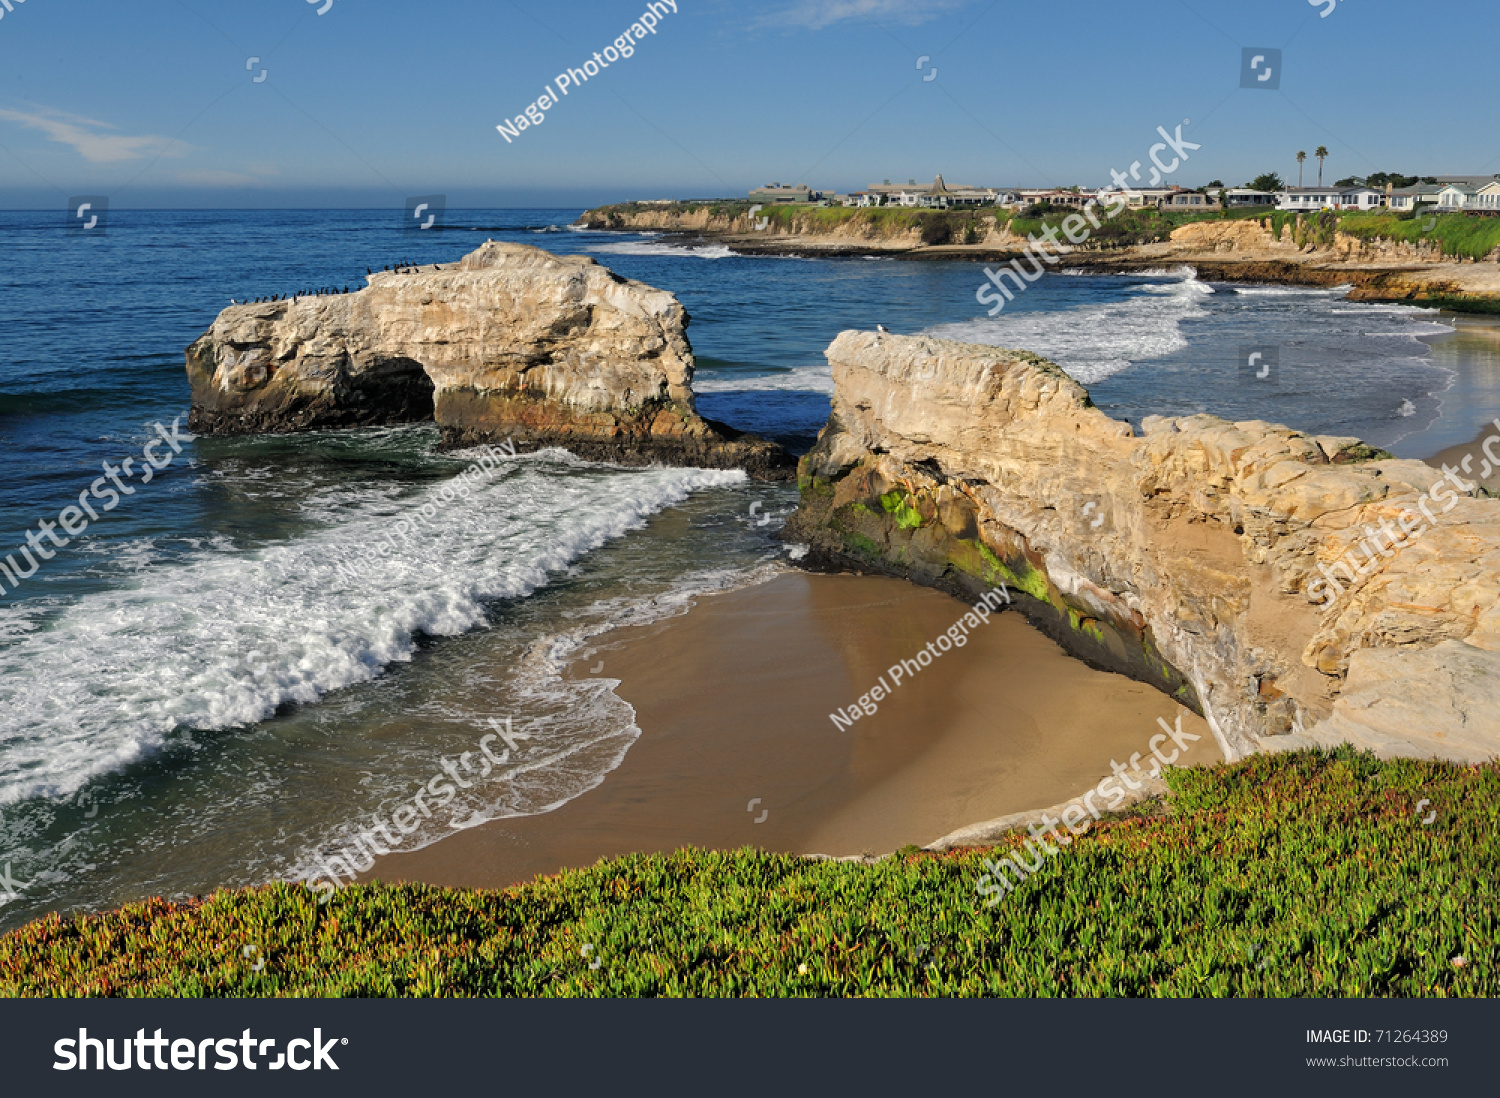 an analysis of the natural bridges state beach in santa cruz Natural bridges state beach, santa cruz: see 705 reviews, articles, and 358 photos of natural bridges state beach, ranked no5 on tripadvisor among 94 attractions in santa cruz.